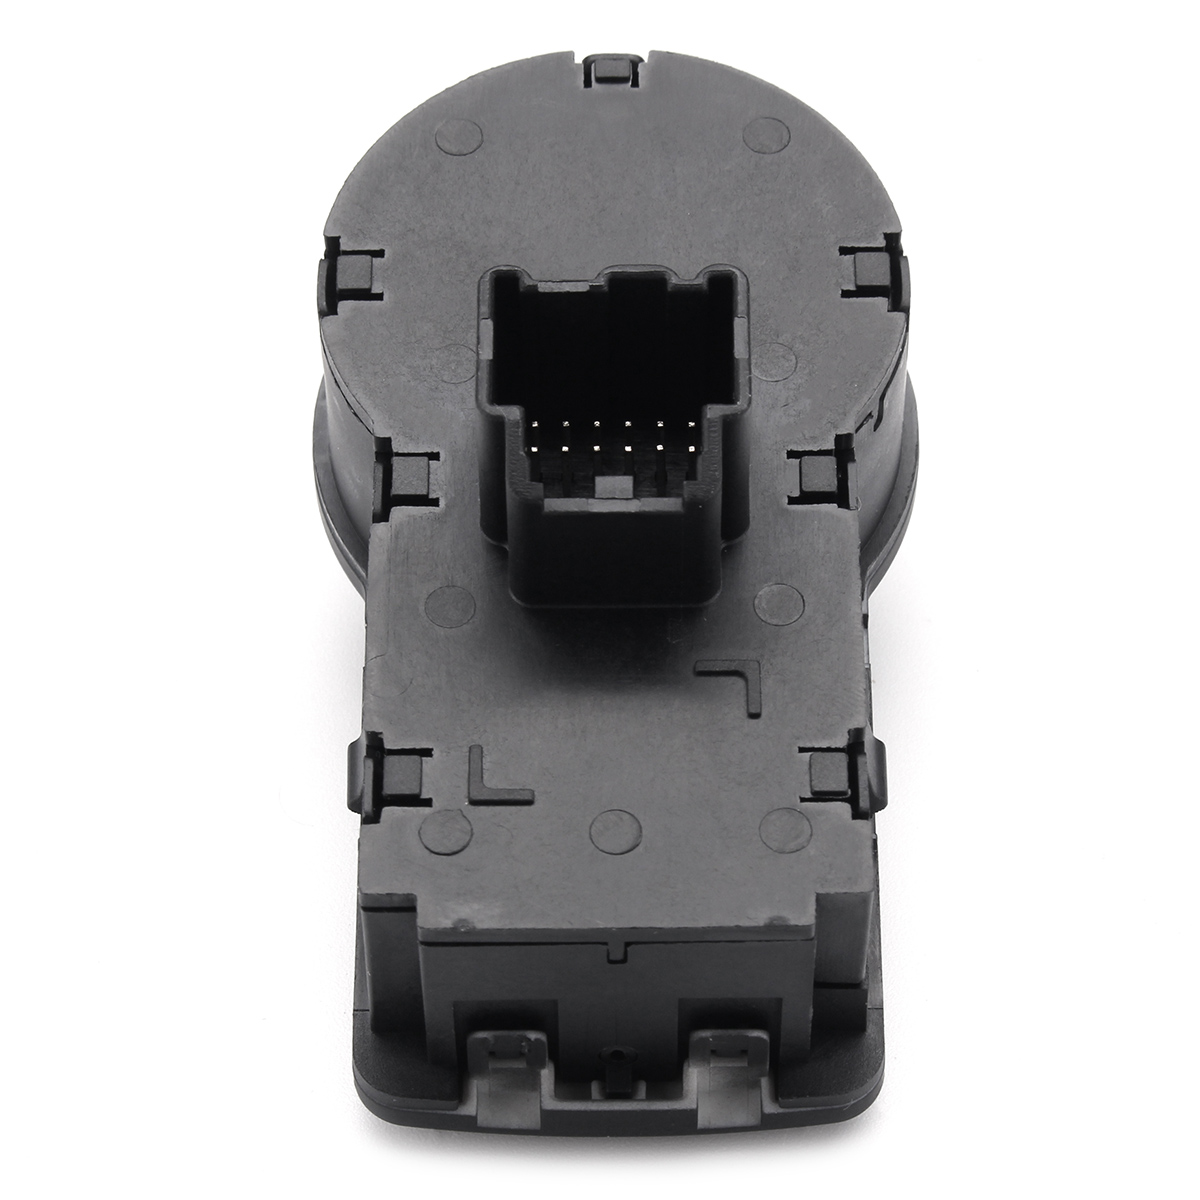 Image 4 - GM13301749 Car Fog Lamp Headlight Switch Button Without AUTO for Chevrolet Cruze J300 1.4 1.6 1.7 Chevy-in Car Switches & Relays from Automobiles & Motorcycles